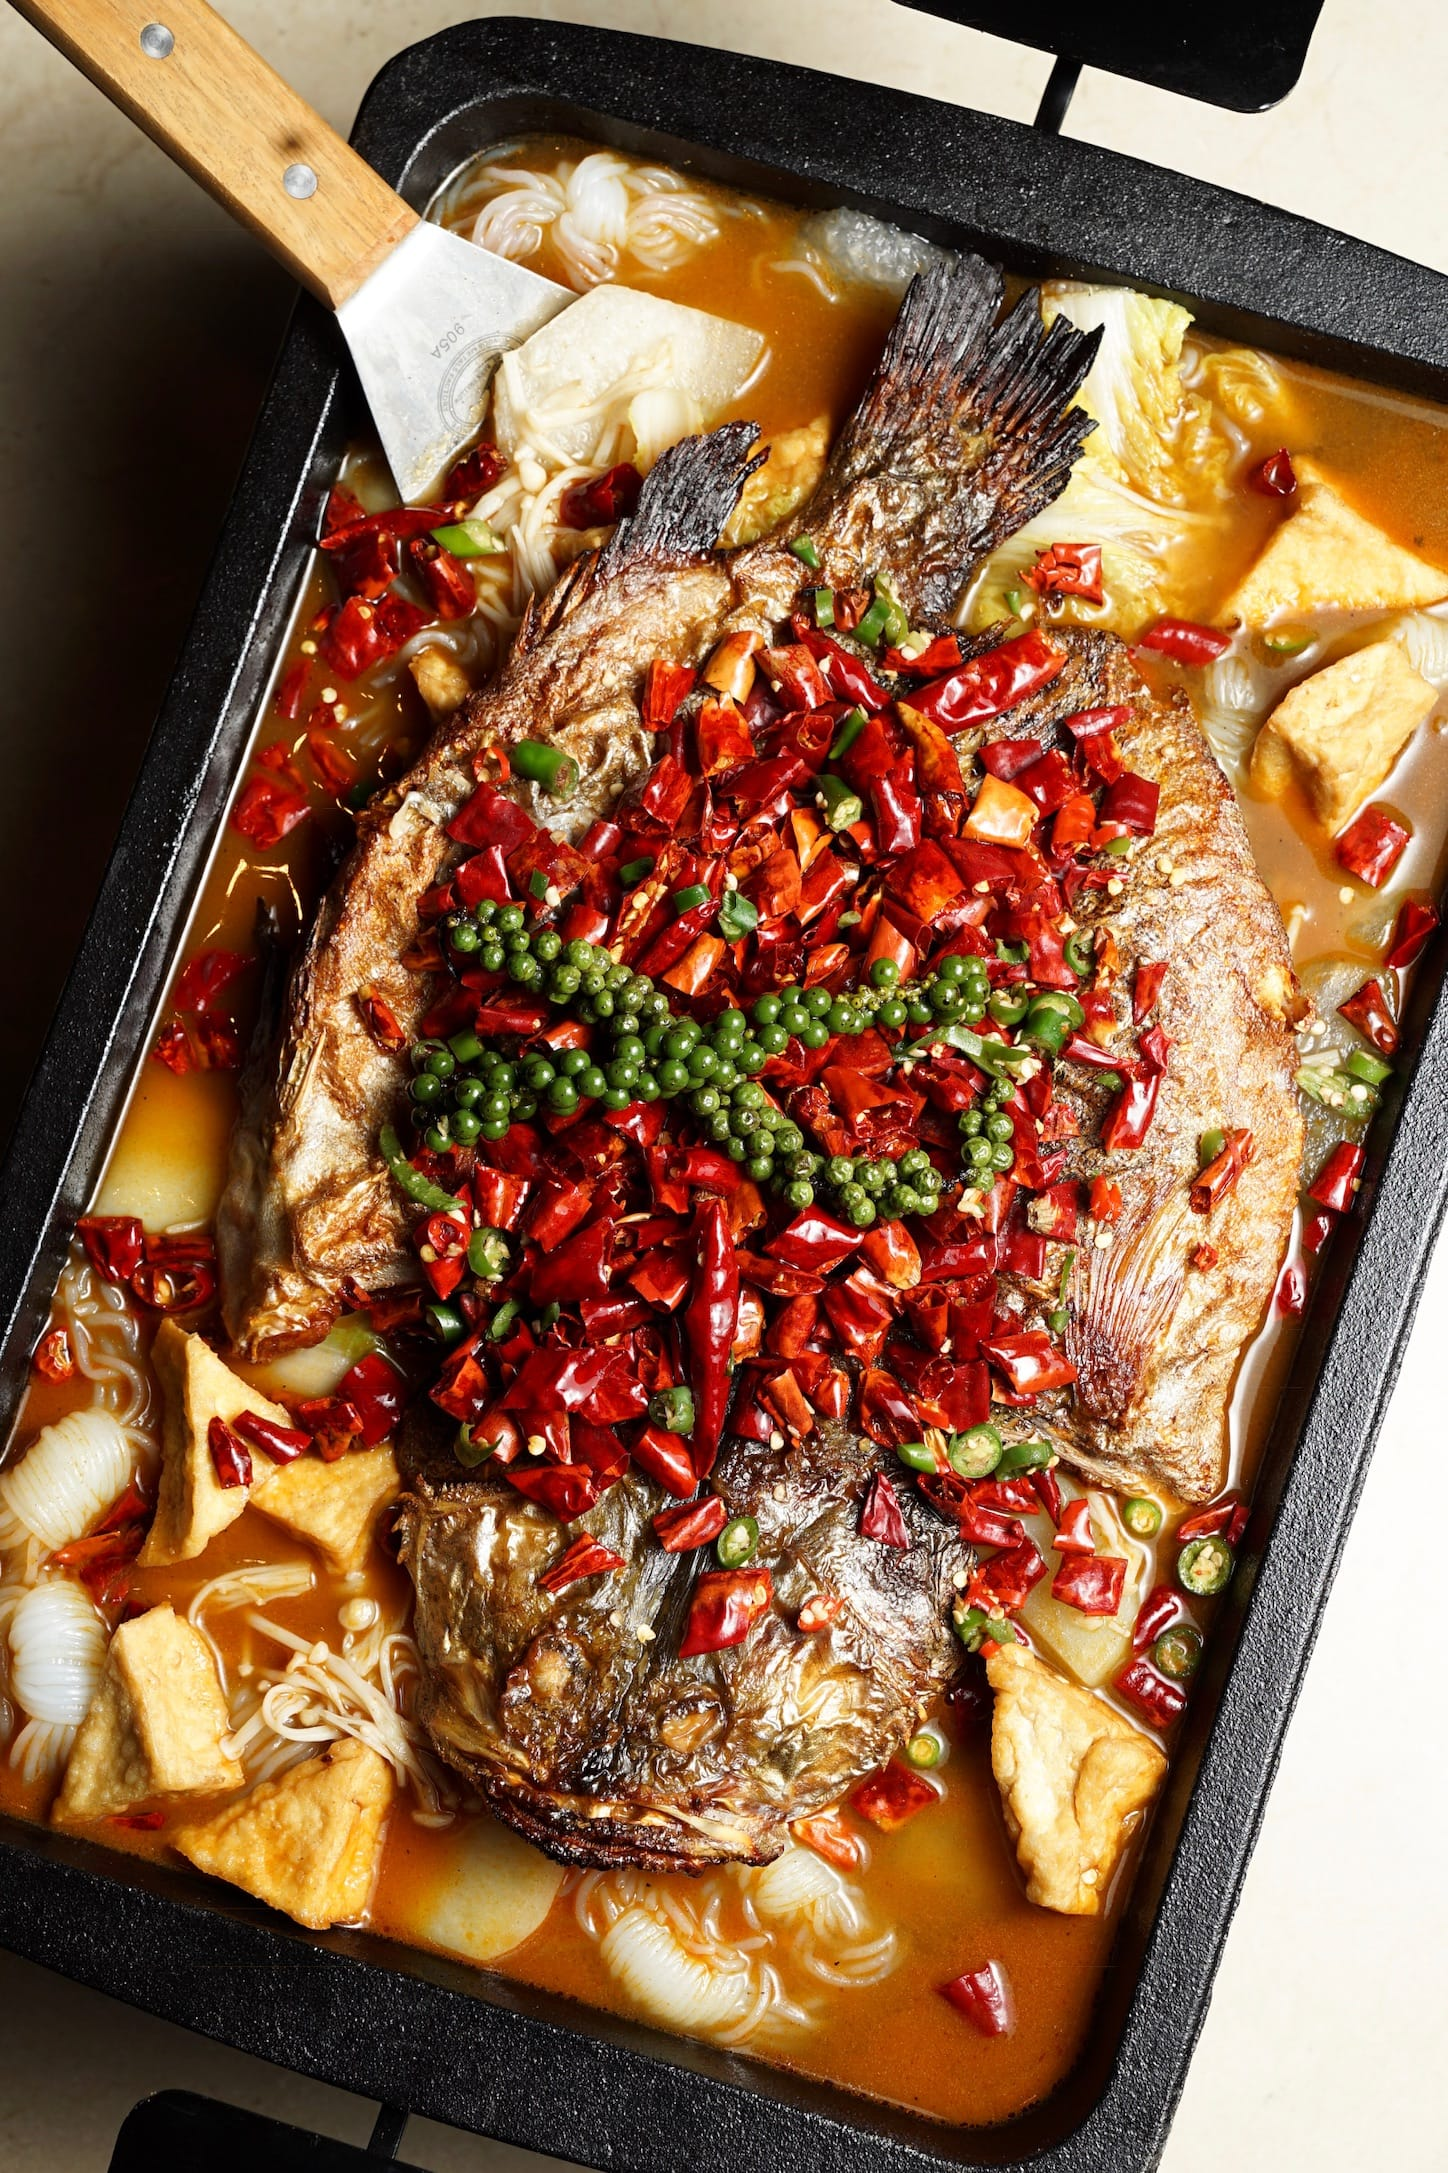 Xin Sichuan Hot and spicy grilled fish